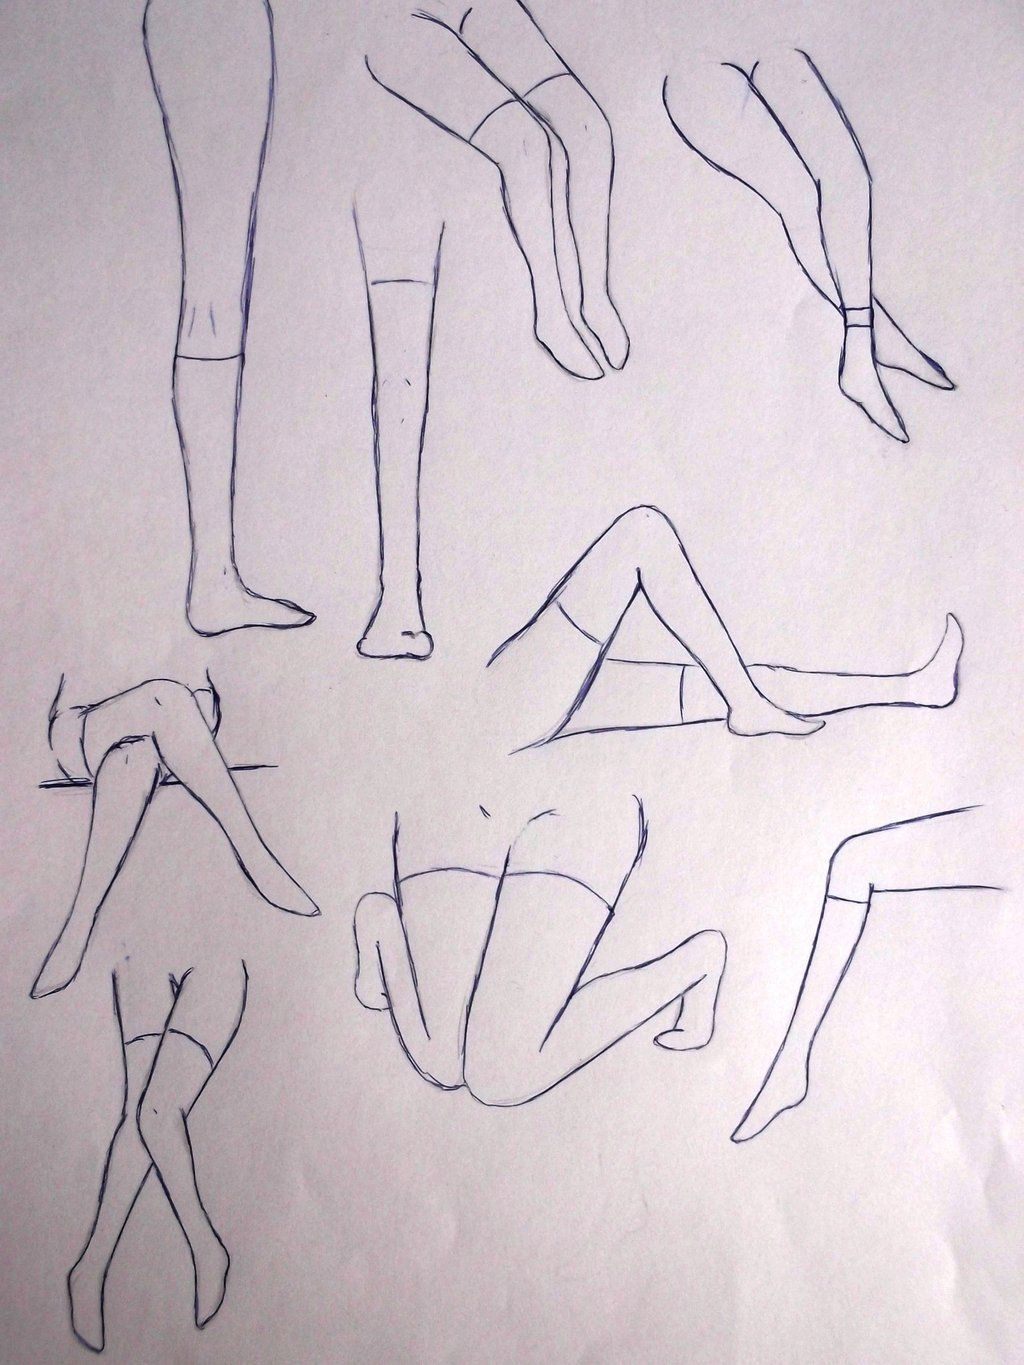 20 How To Draw Body Shapes Step By Step Harunmudak In 2020 Anime Drawings Tutorials Drawing Anime Hands Drawing Anime Bodies